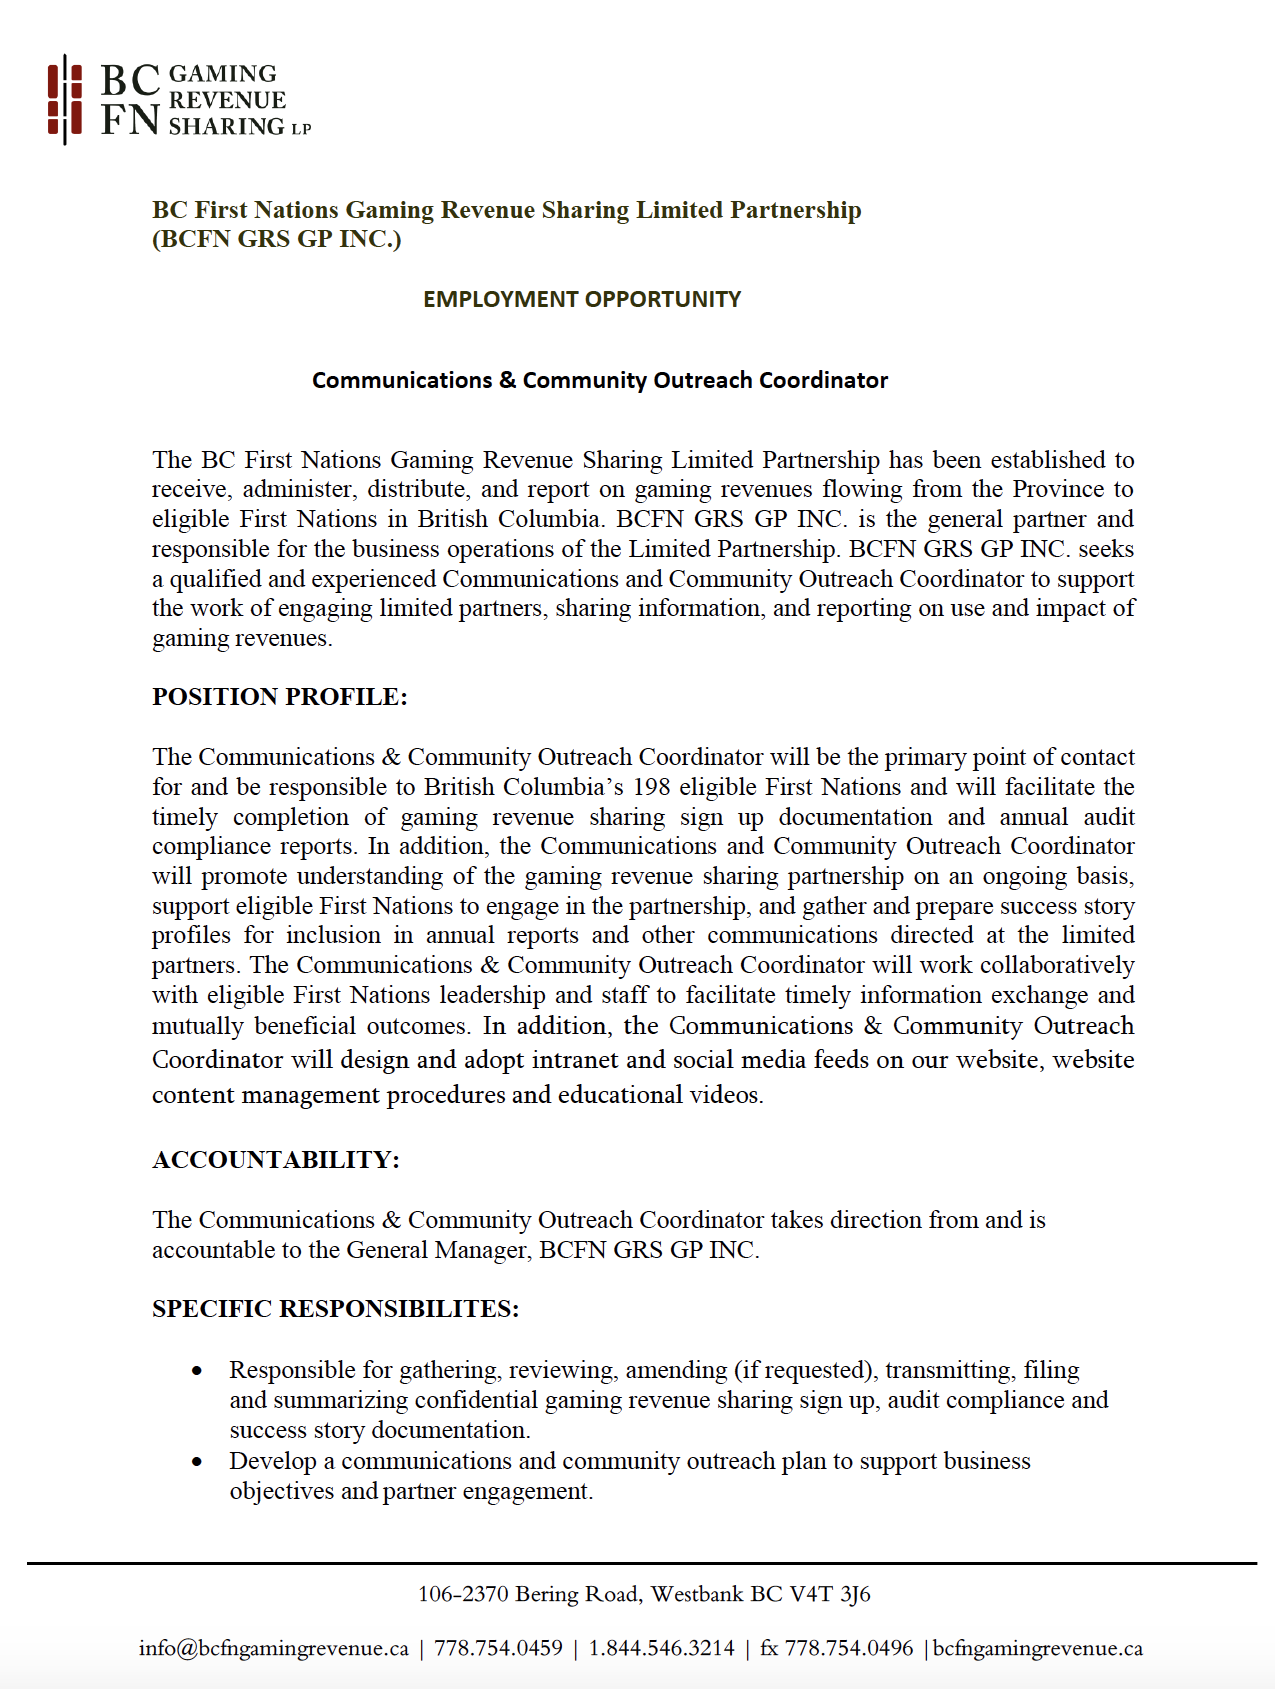 Employment Opportunity with BC FN Gaming Revenue